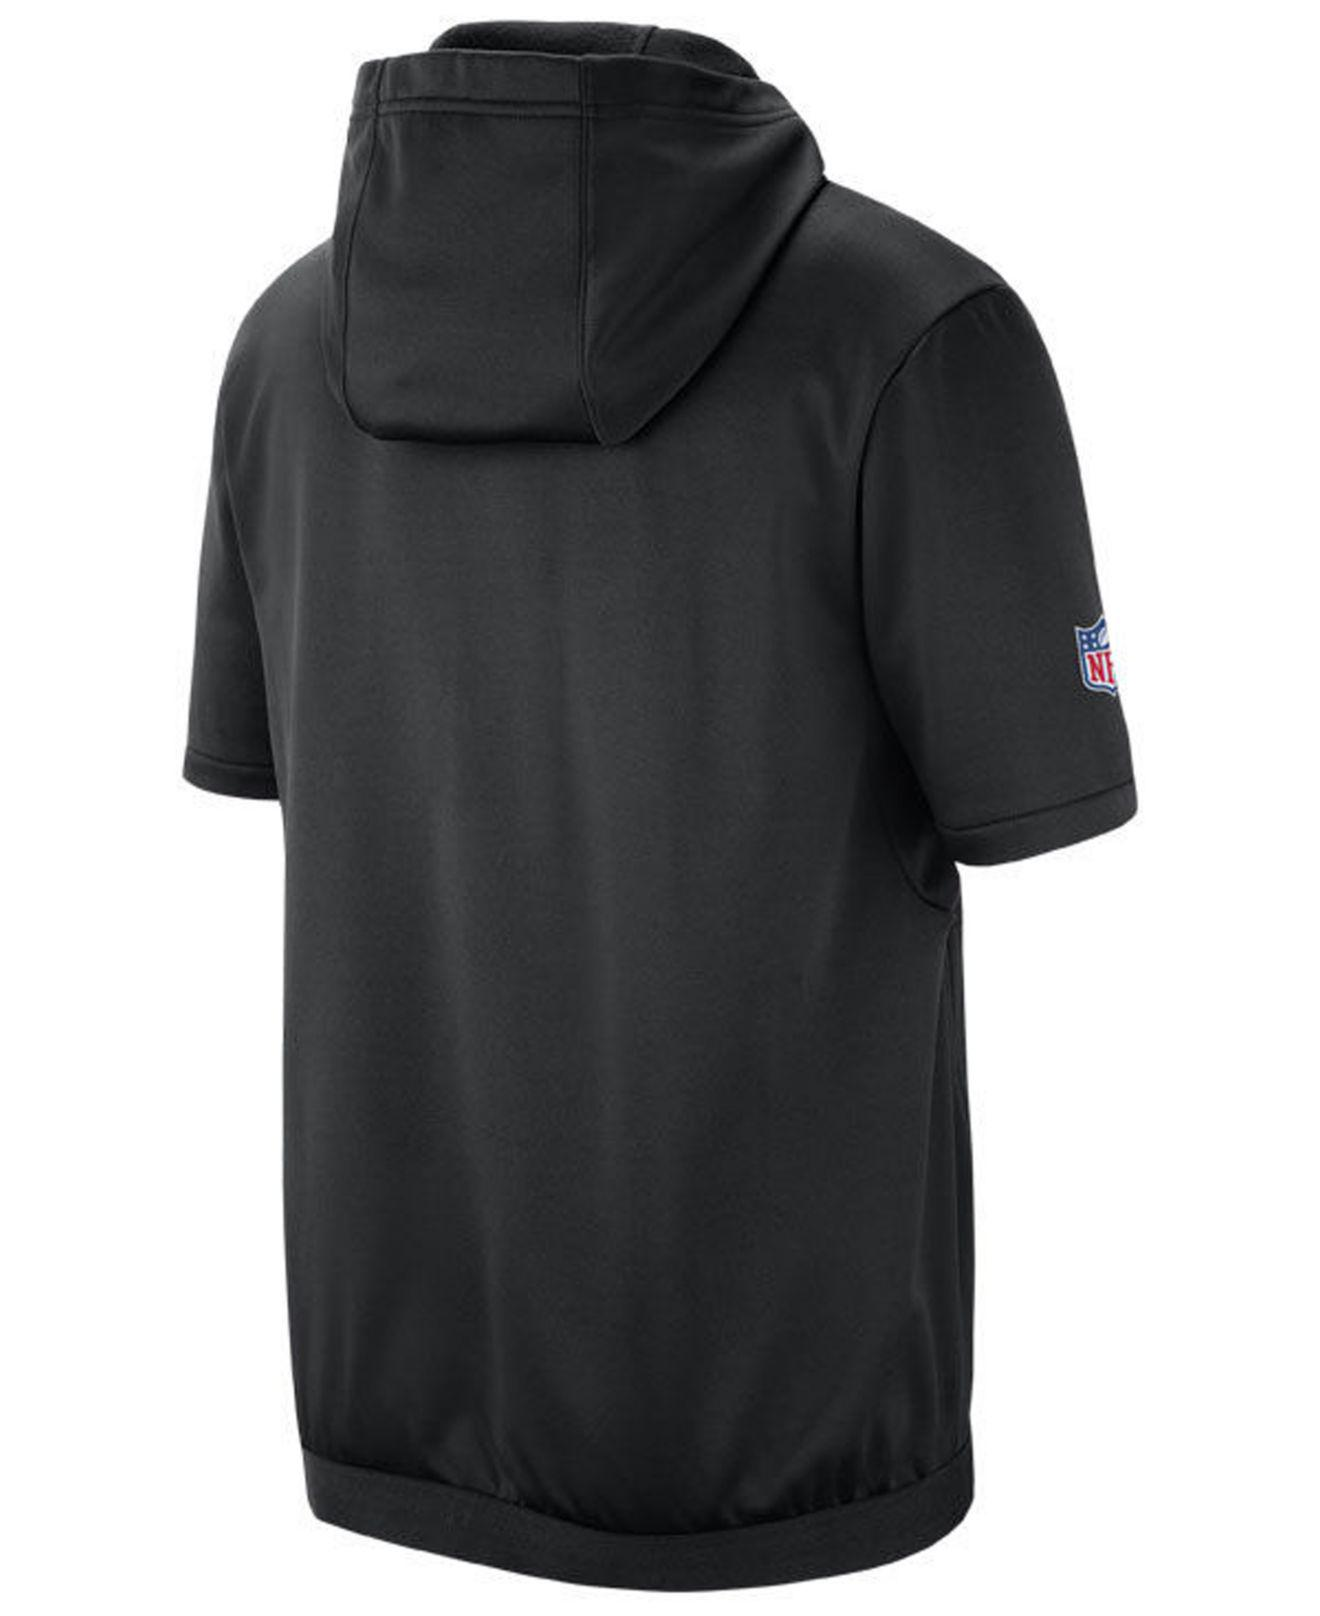 Lyst - Nike Pittsburgh Steelers Therma Top Short Sleeve Jacket in Black for  Men 6a4a124ac